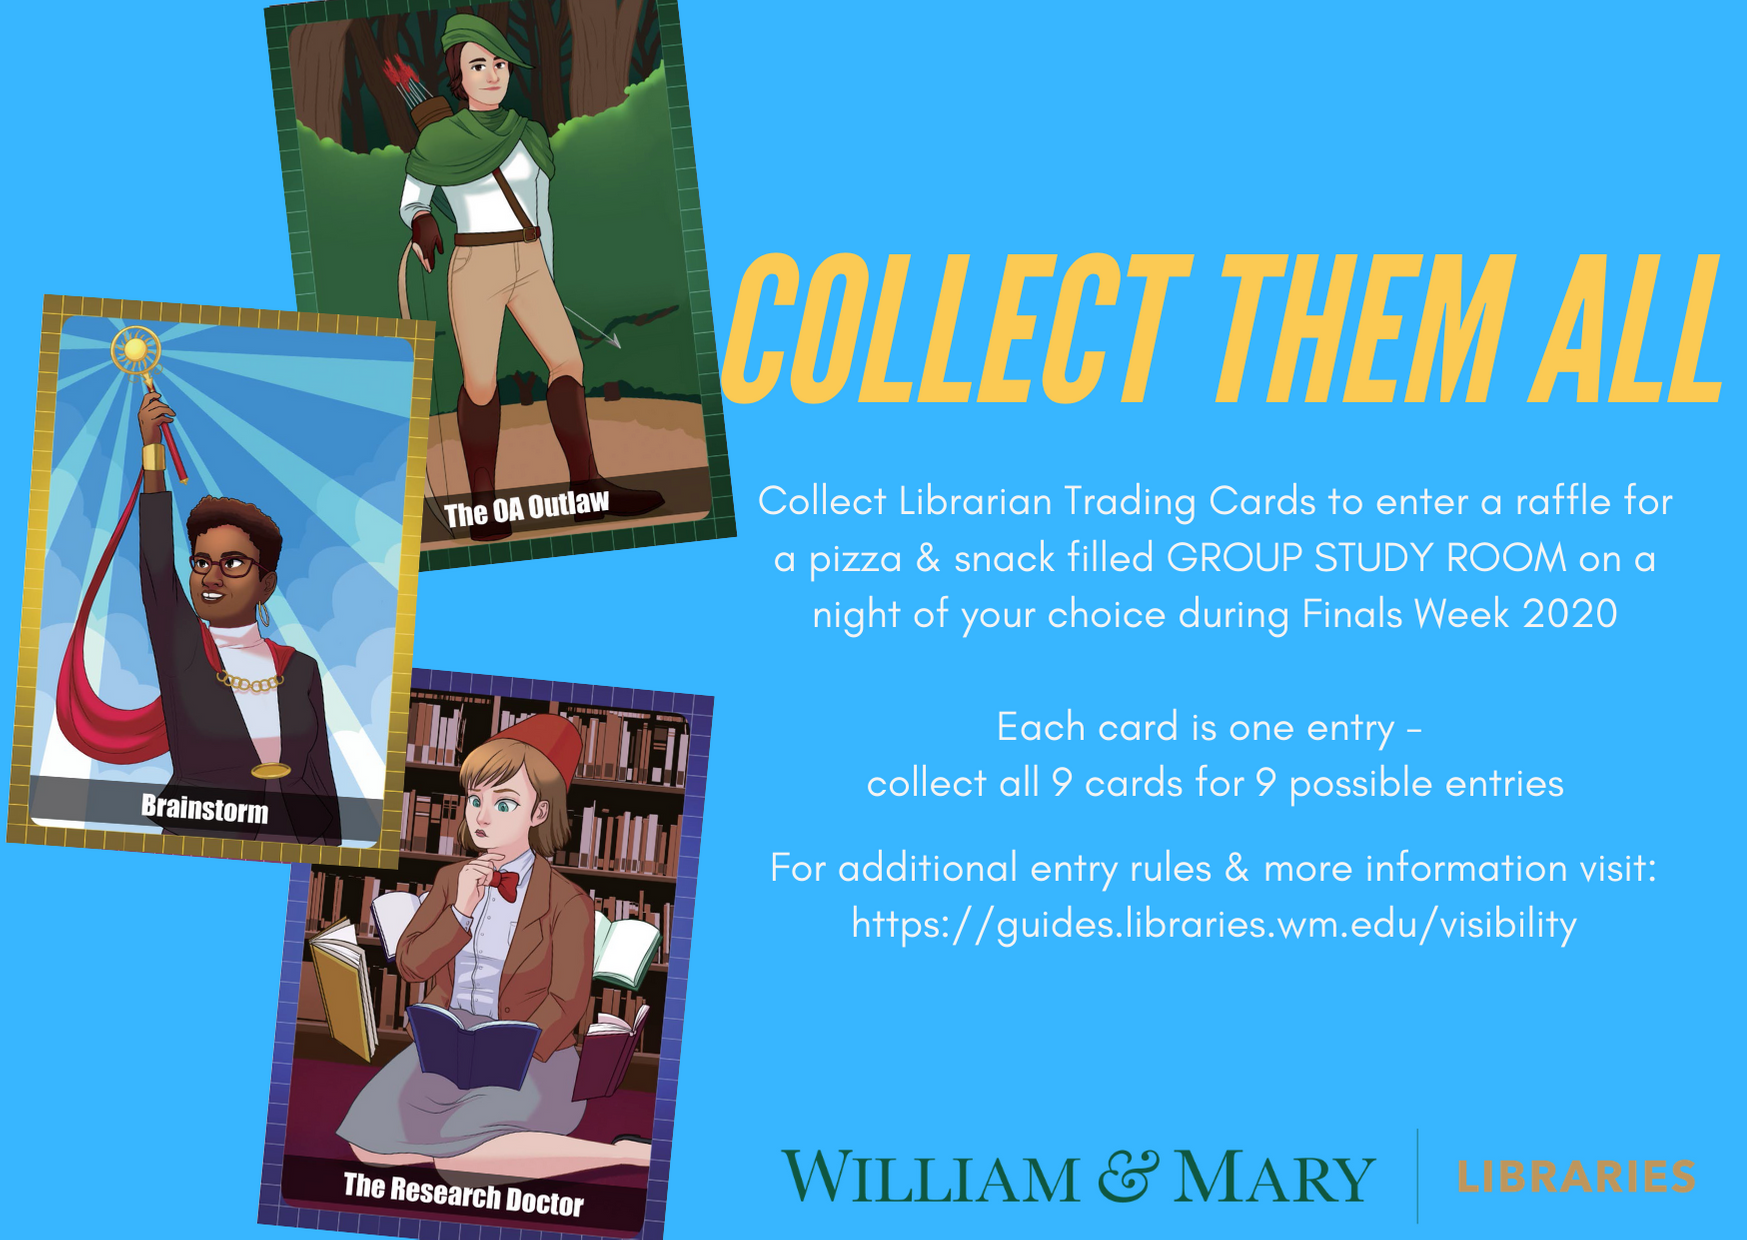 Collect them all - Collect Librarian Trading Cards to enter a raffle for a pizza & snack filled GROUP STUDY ROOM on a night of your choice during Finals Week 2020  Each card is one entry -  collect all 9 cards for 9 possible entries